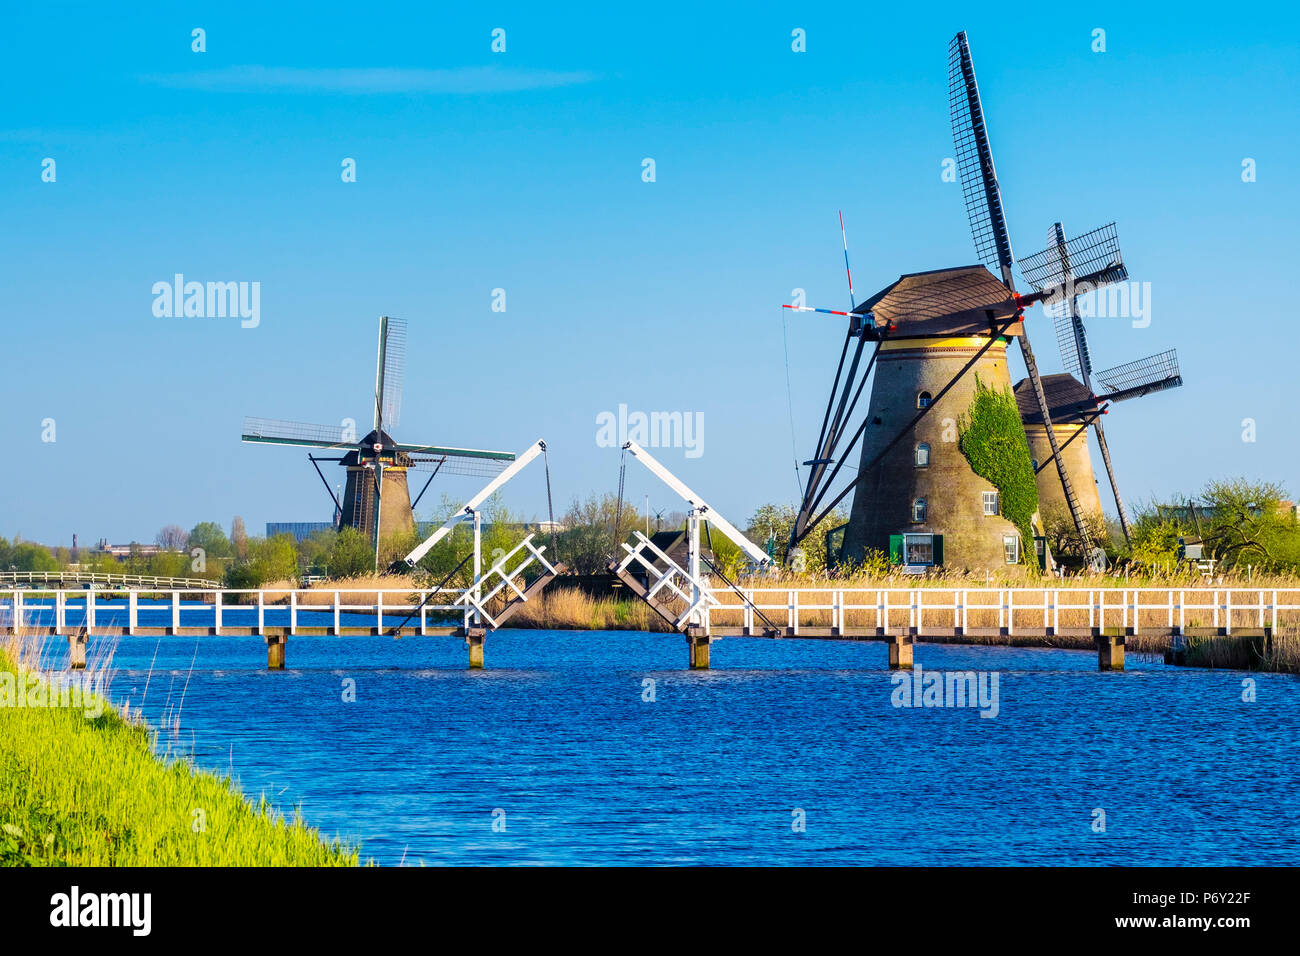 Netherlands, South Holland, Kinderdijk, UNESCO World Heritage Site. Historic Dutch windmills on the polders. - Stock Image